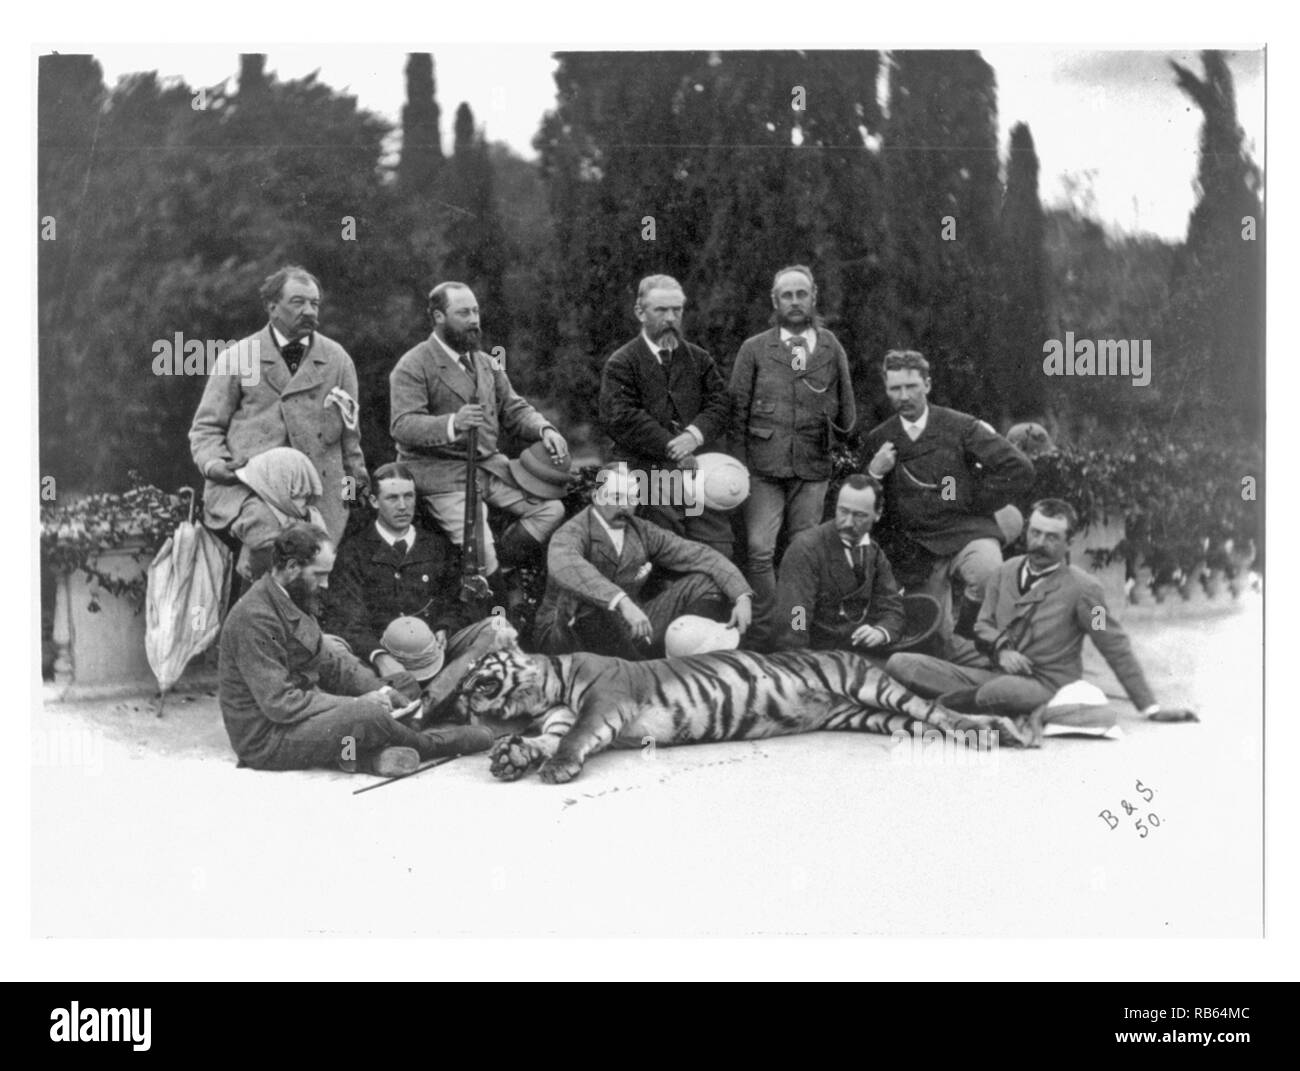 Photograph of The Prince of Wales, (Later King Edward VII of Great Britain), holding rifle, posing with members of his party and a dead tiger, during his tour of India. Dated 1875 - Stock Image